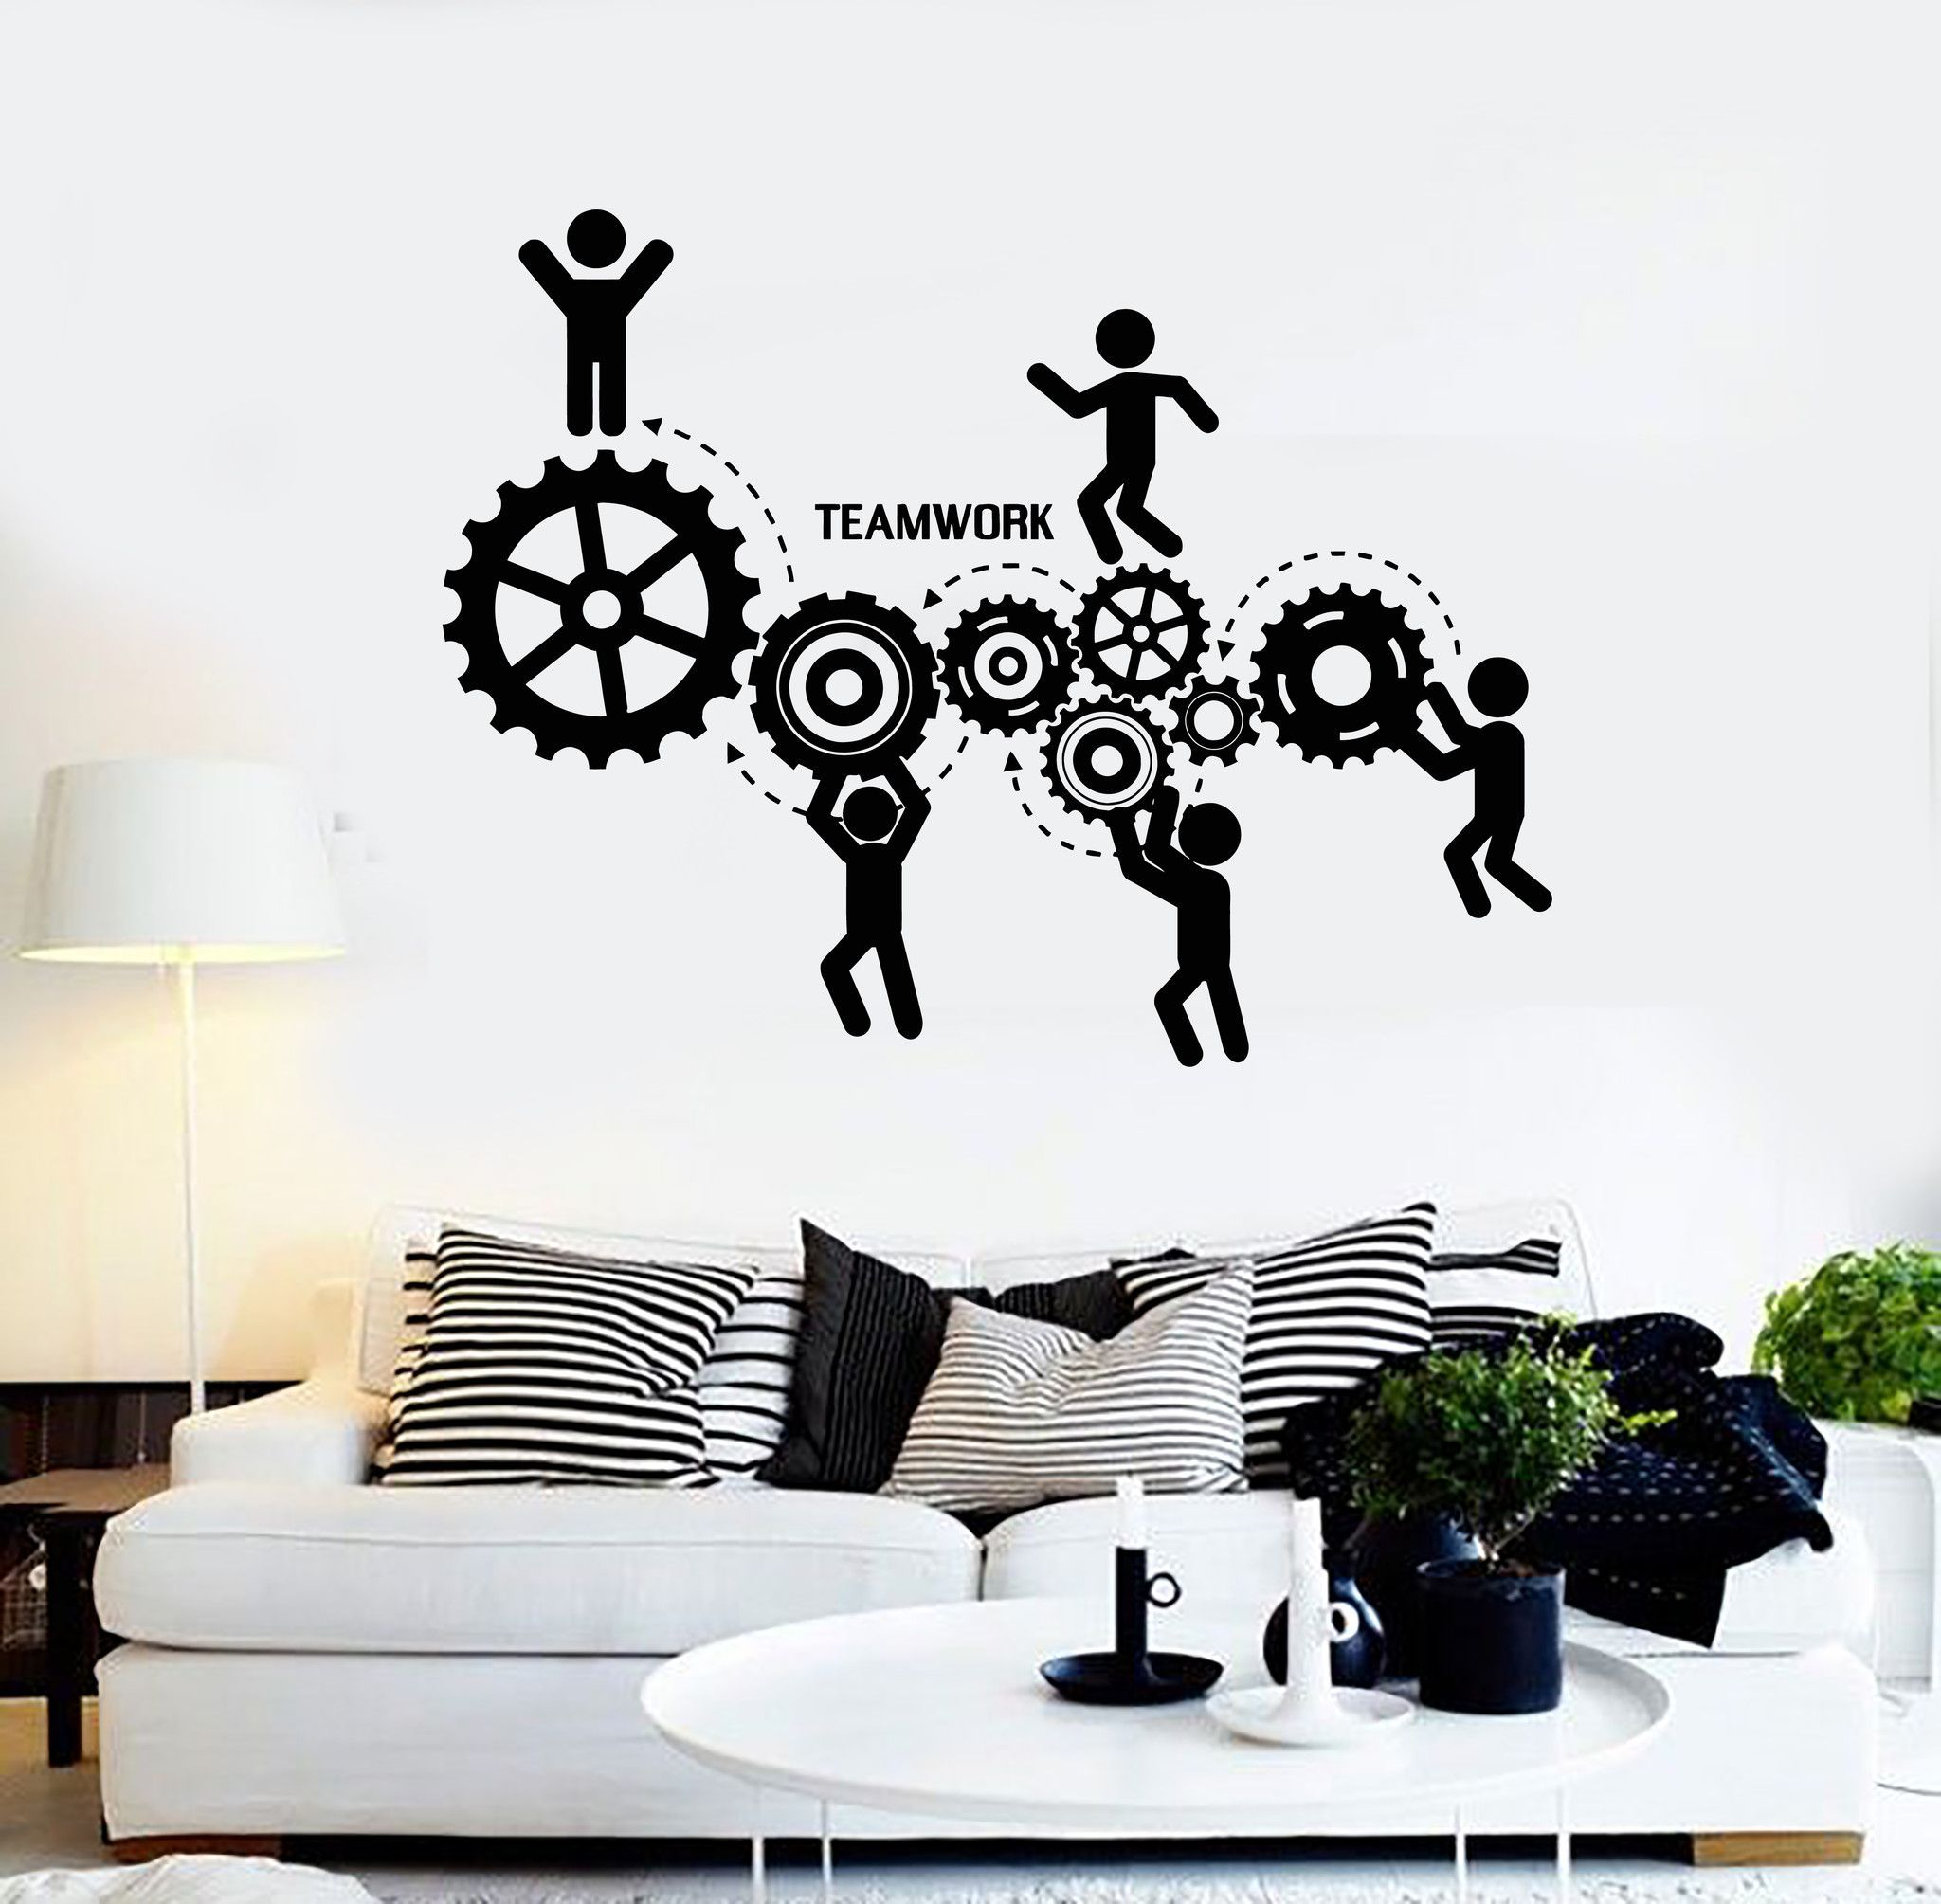 Vinyl Wall Decal Teamwork Office Motivation Worker Stickers (ig4159) Part 81